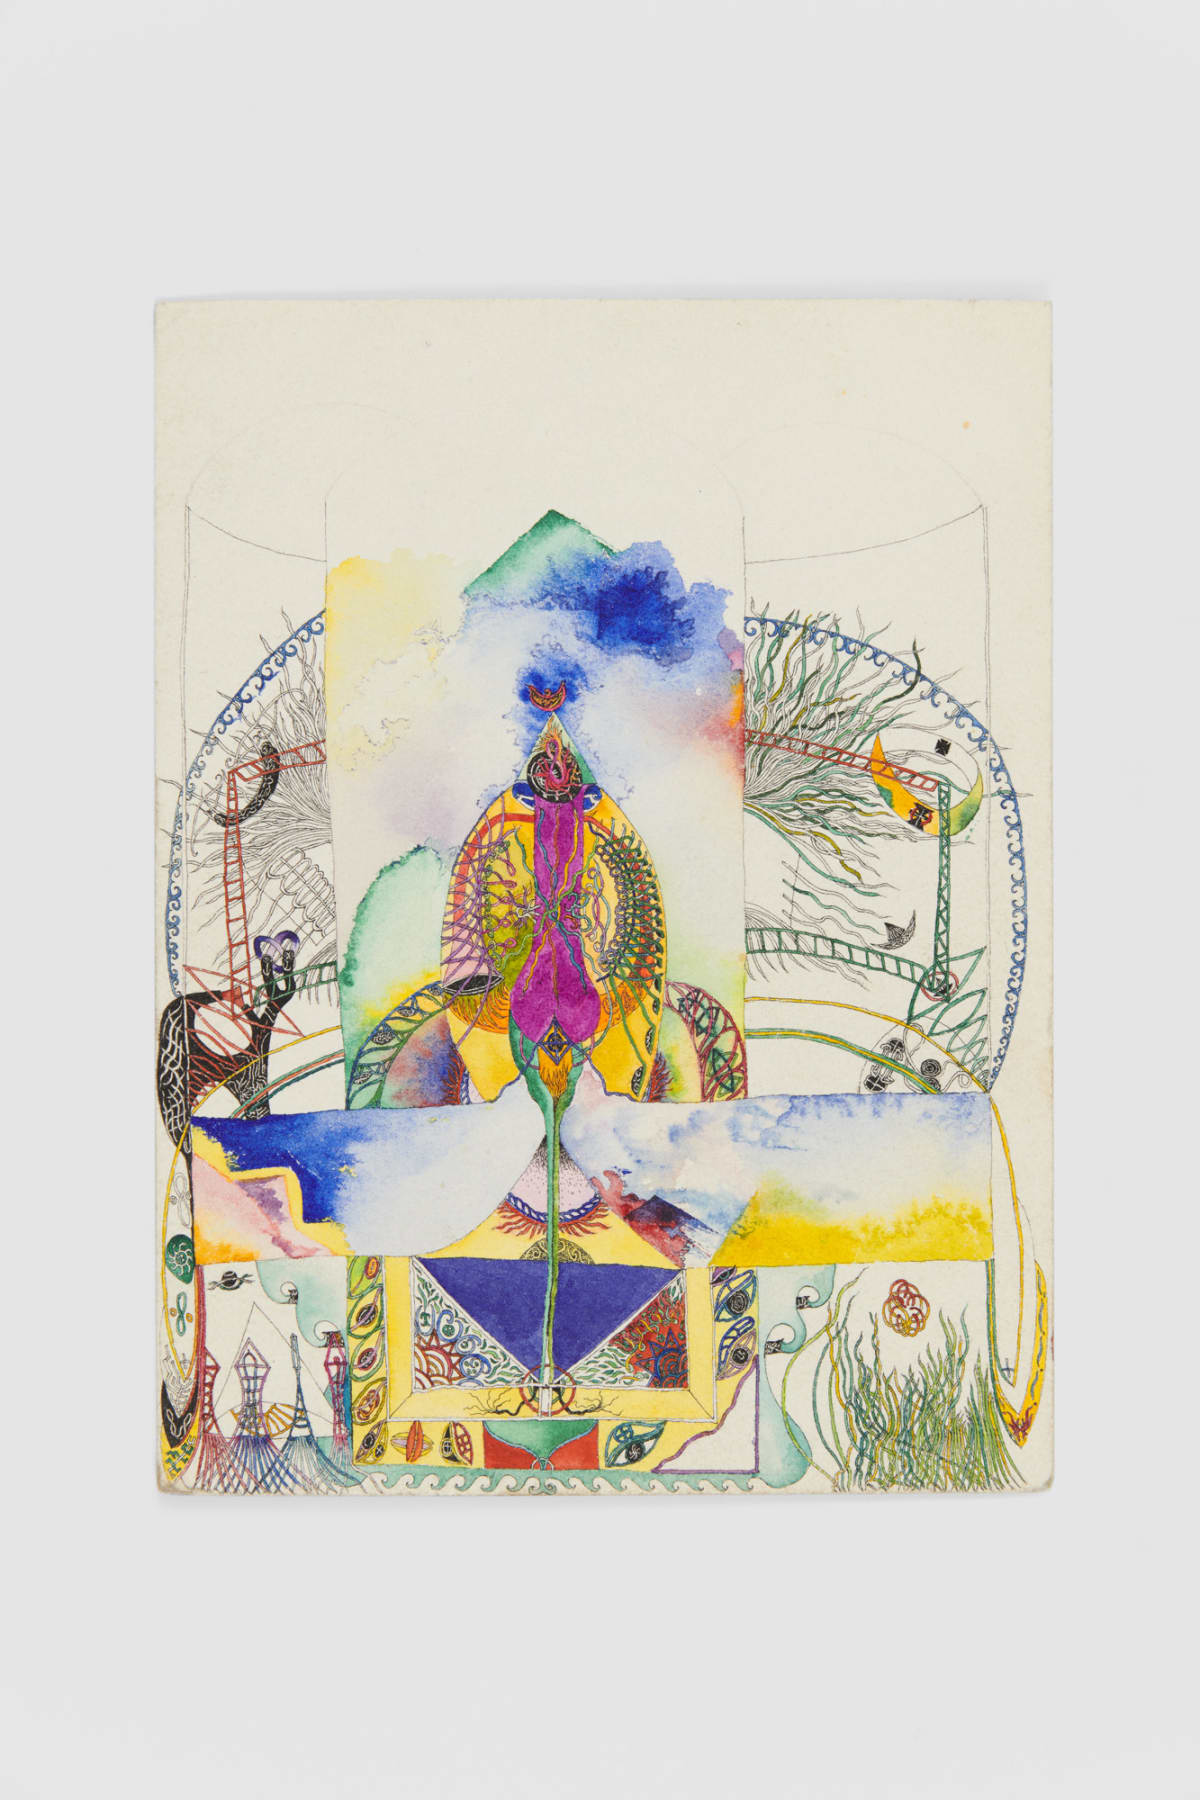 Ann CHURCHILL Coloured drawing (to create the temple with heart), 1976 Ink on paper 23.6 x 17.8 cm